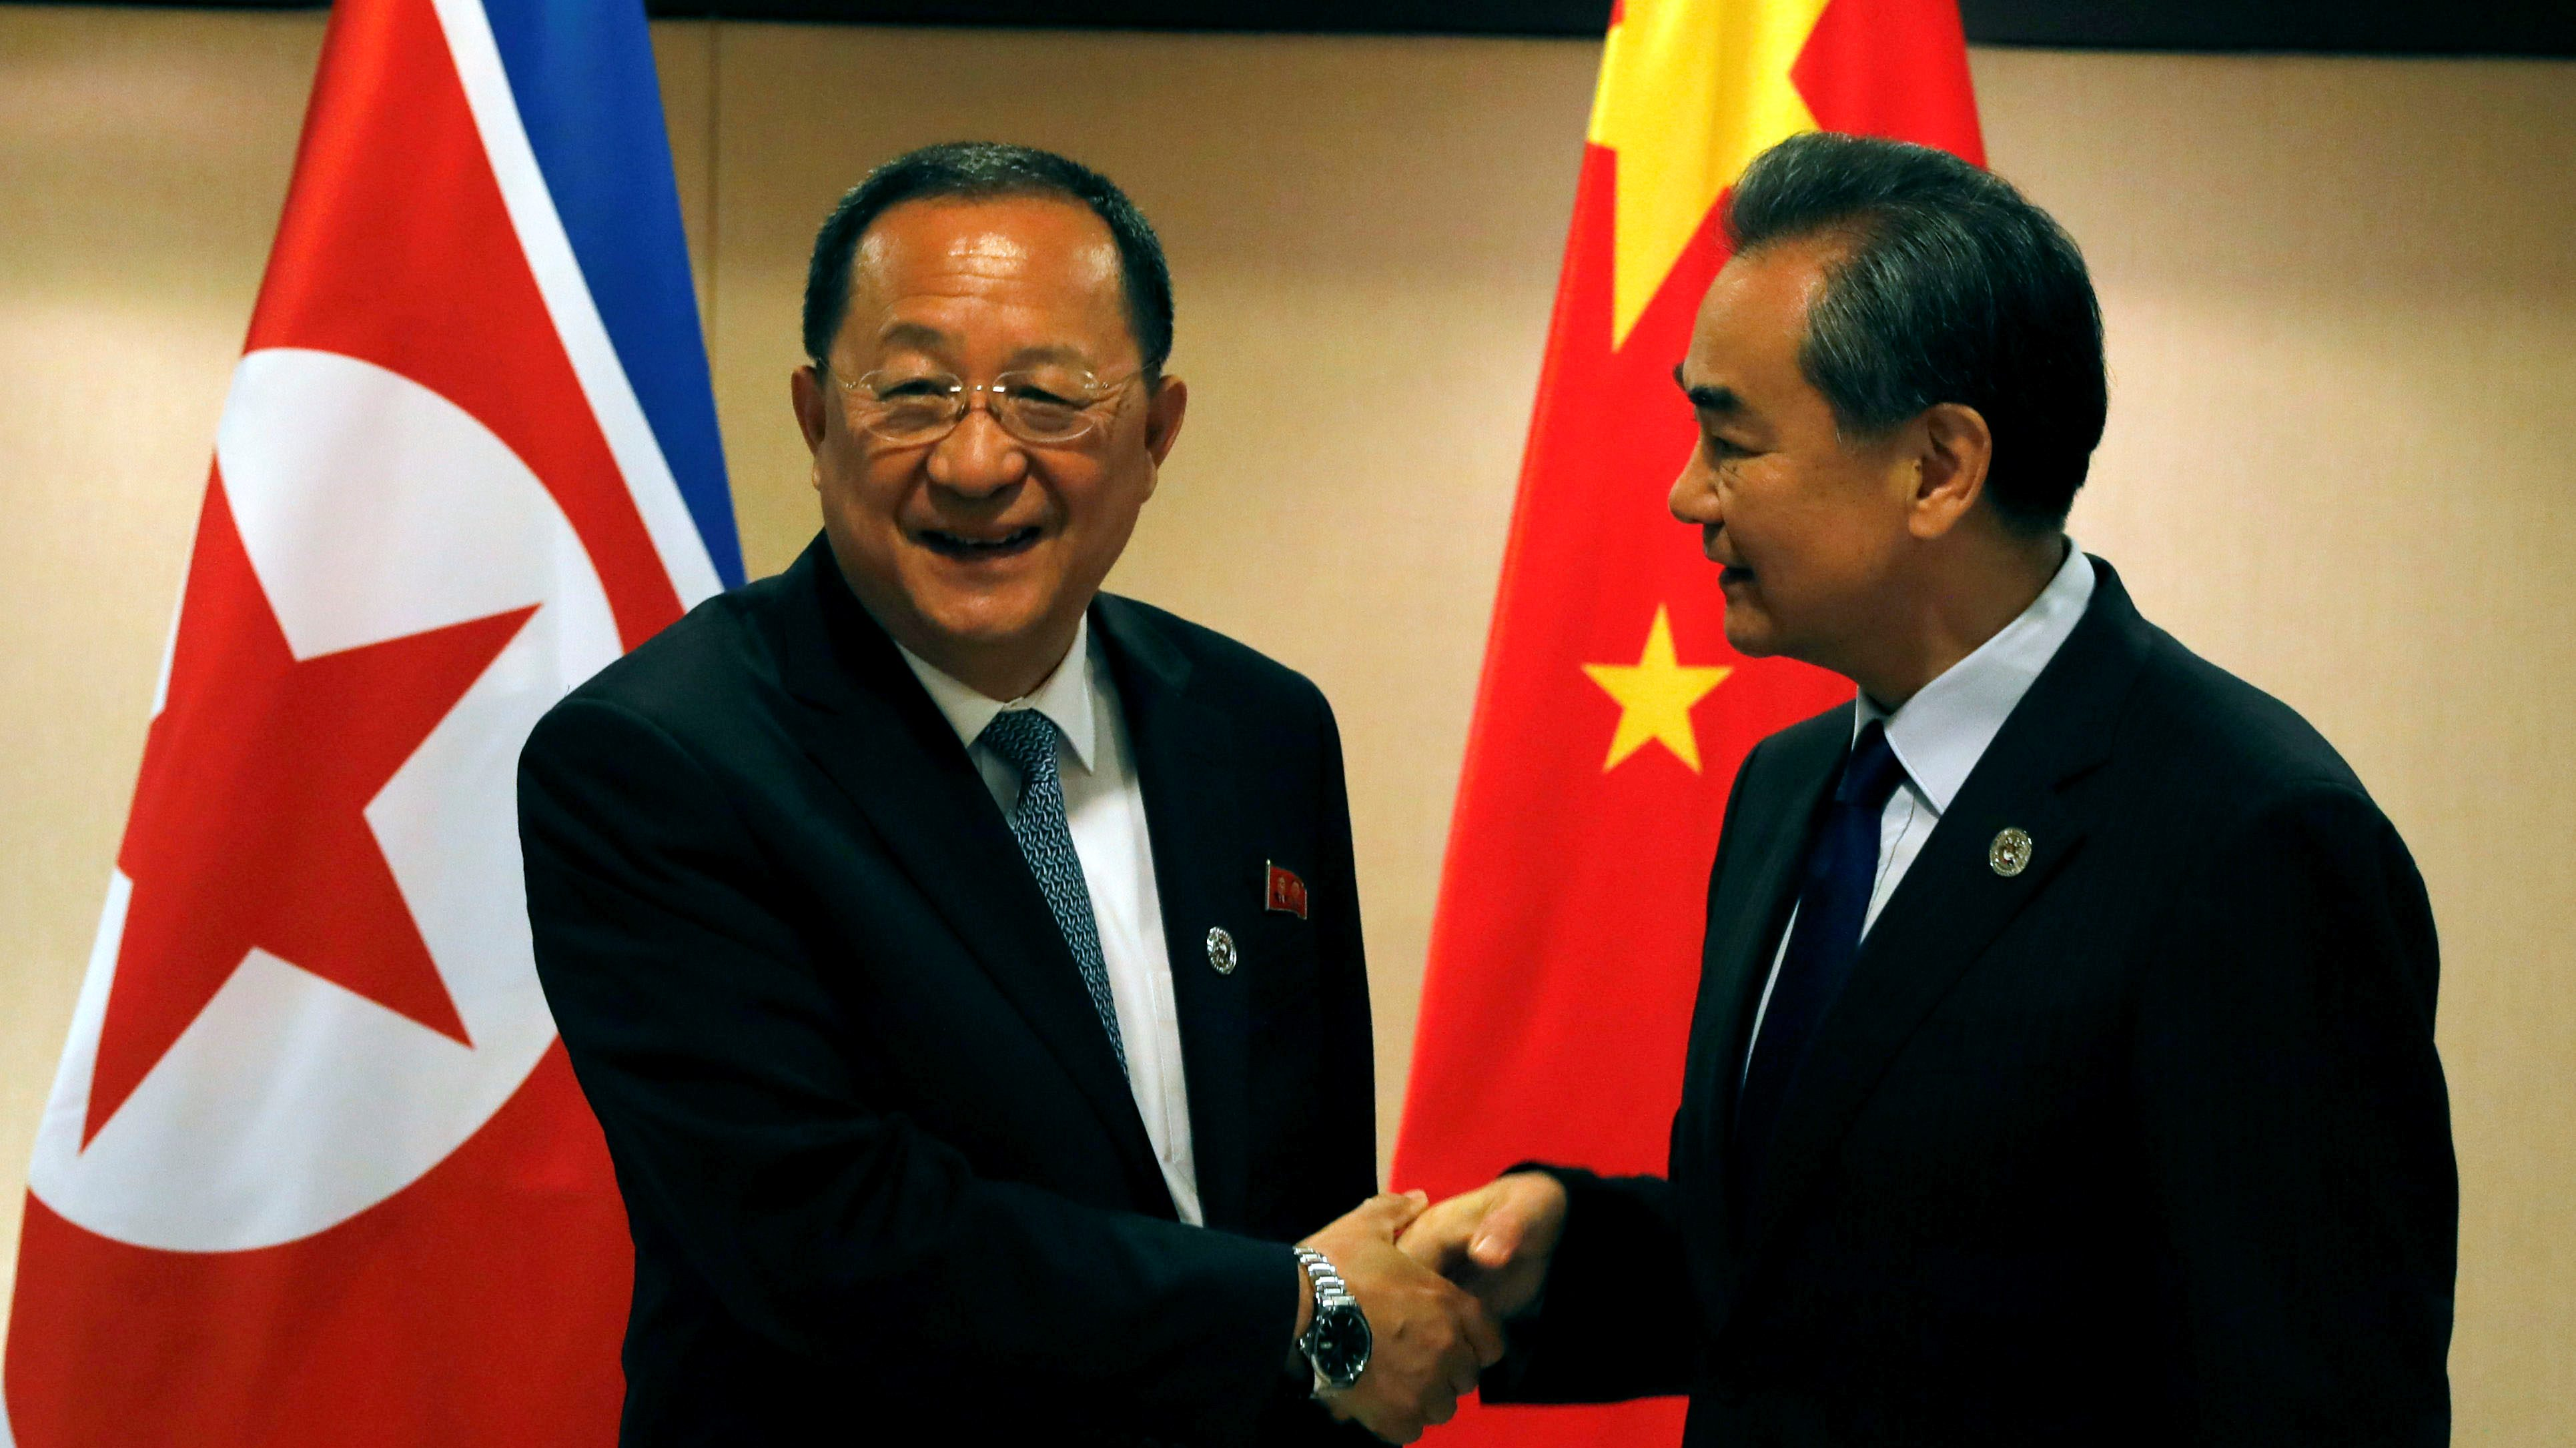 China's Foreign Minister Wang Yi (R) shakes hands with North Korea's Foreign Minister Ri Yong Ho before their bilateral meeting on the sidelines of the 50th Association of Southeast Asia Nations (ASEAN) Regional Forum (ARF) in Manila, Philippines August 6, 2017.